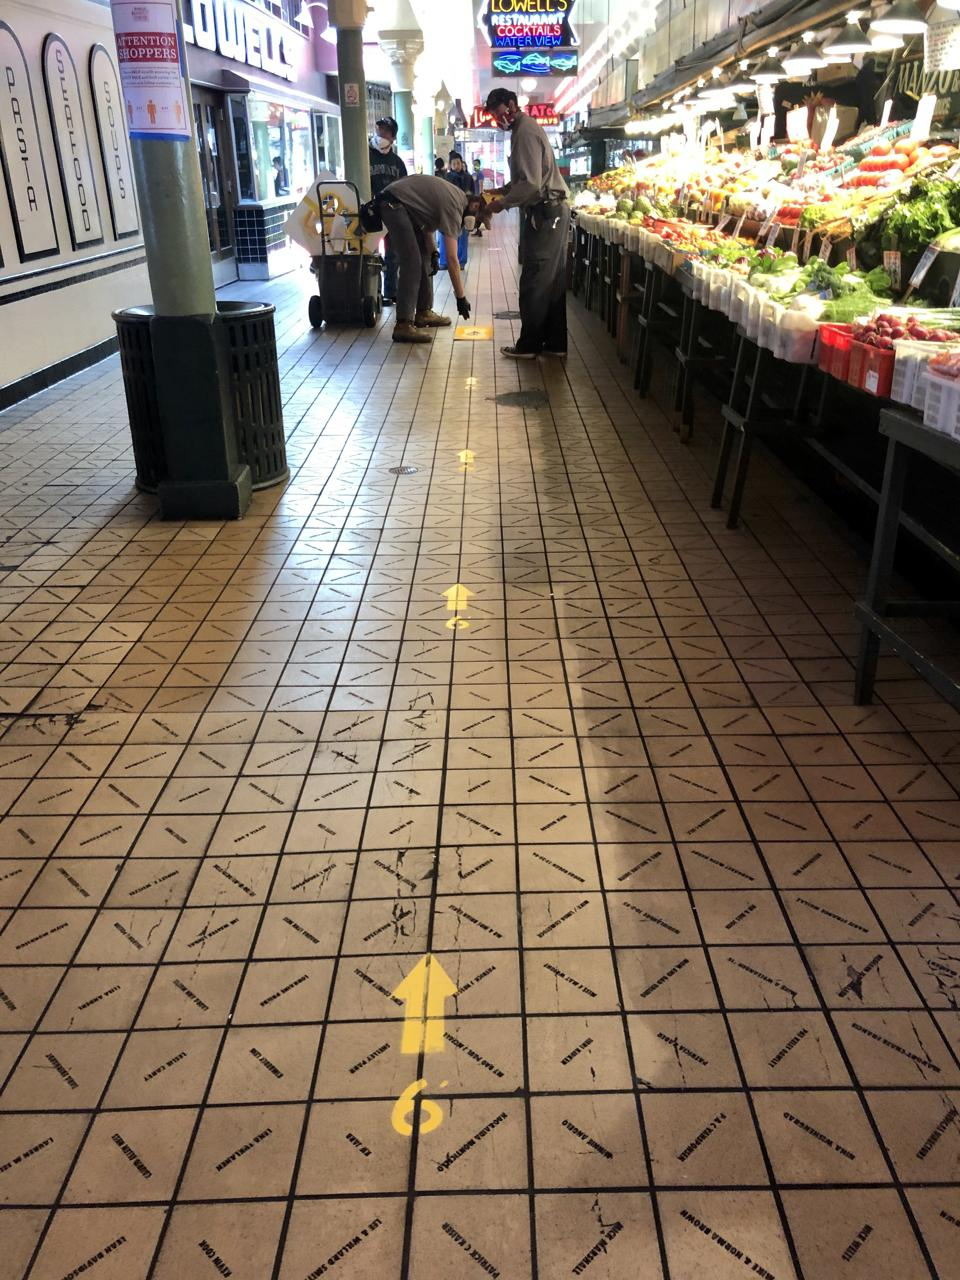 Pike Place Market in Seattle urges shoppers to keep social distance.